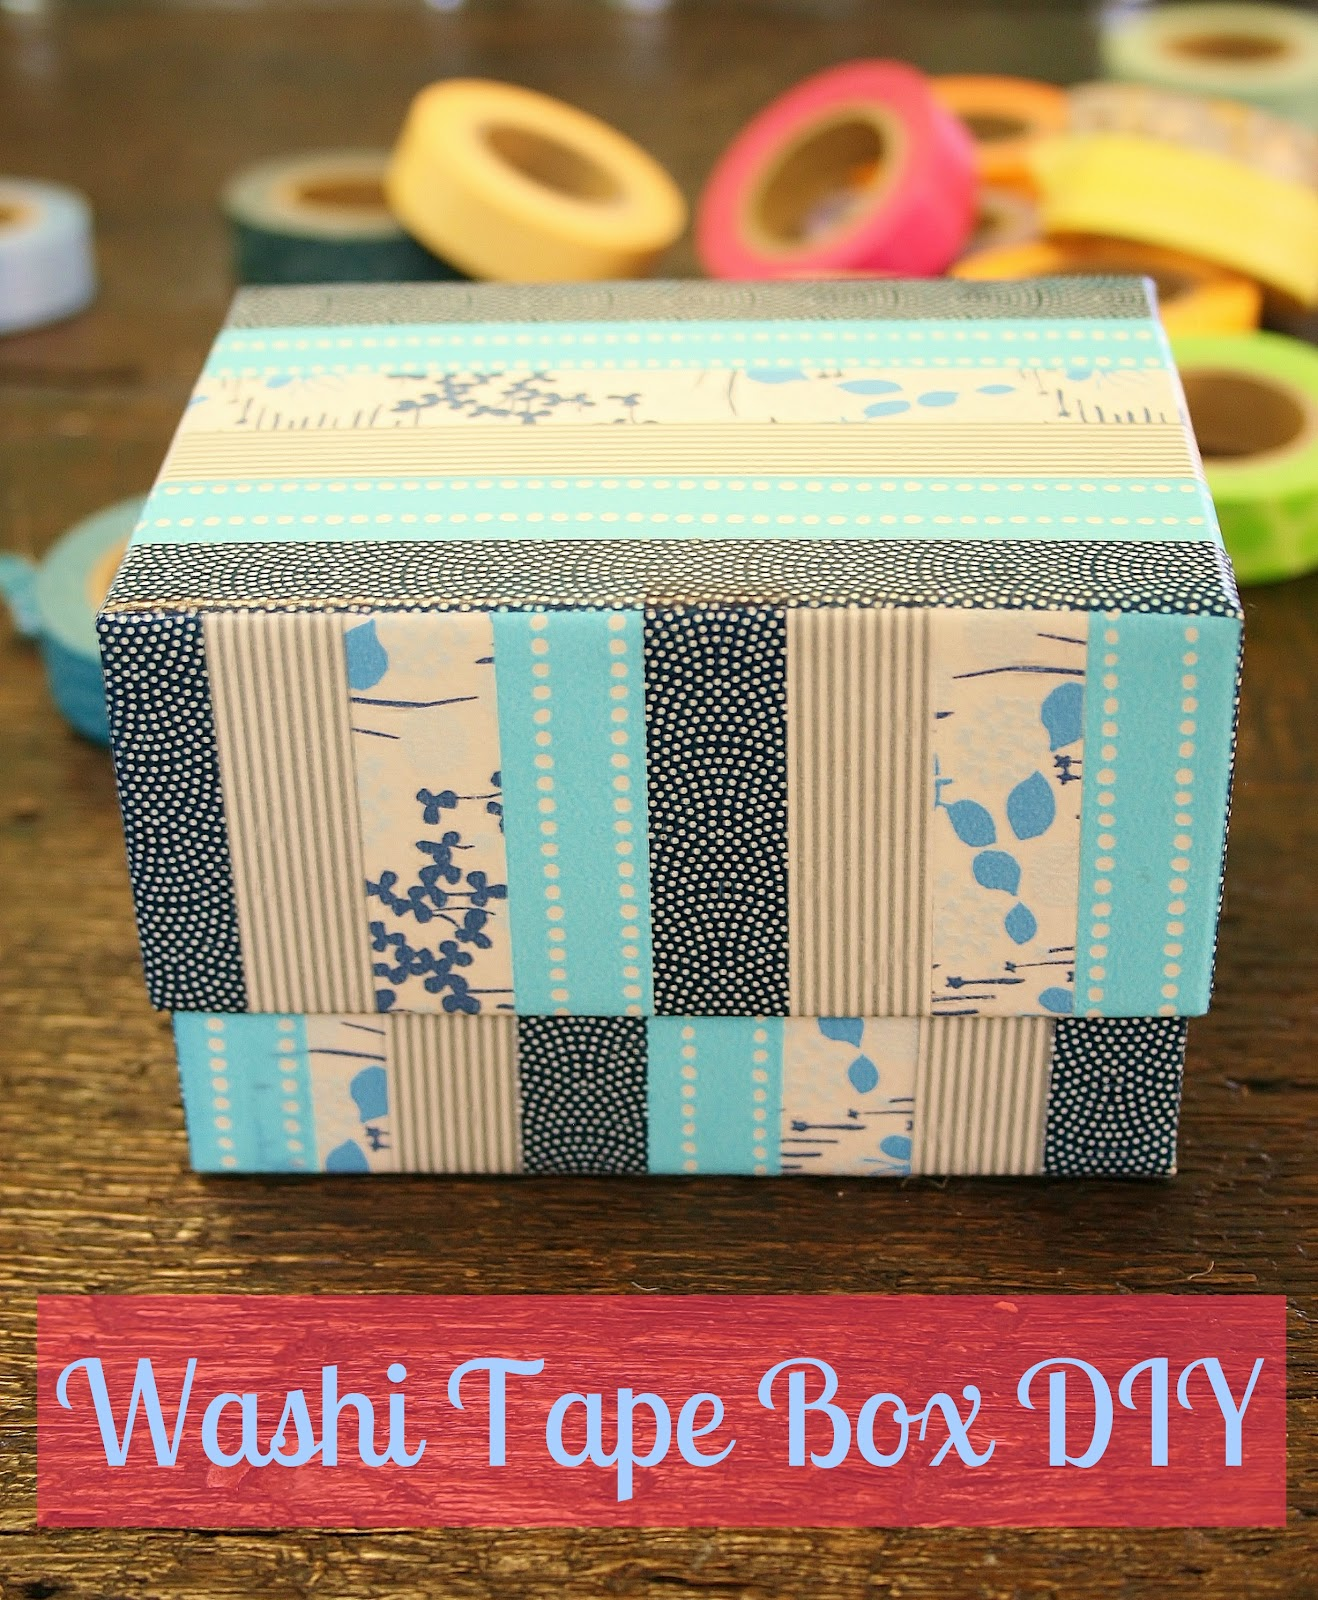 Make it monday with washi tape crafty lifestyle blog for Crafts with washi tape